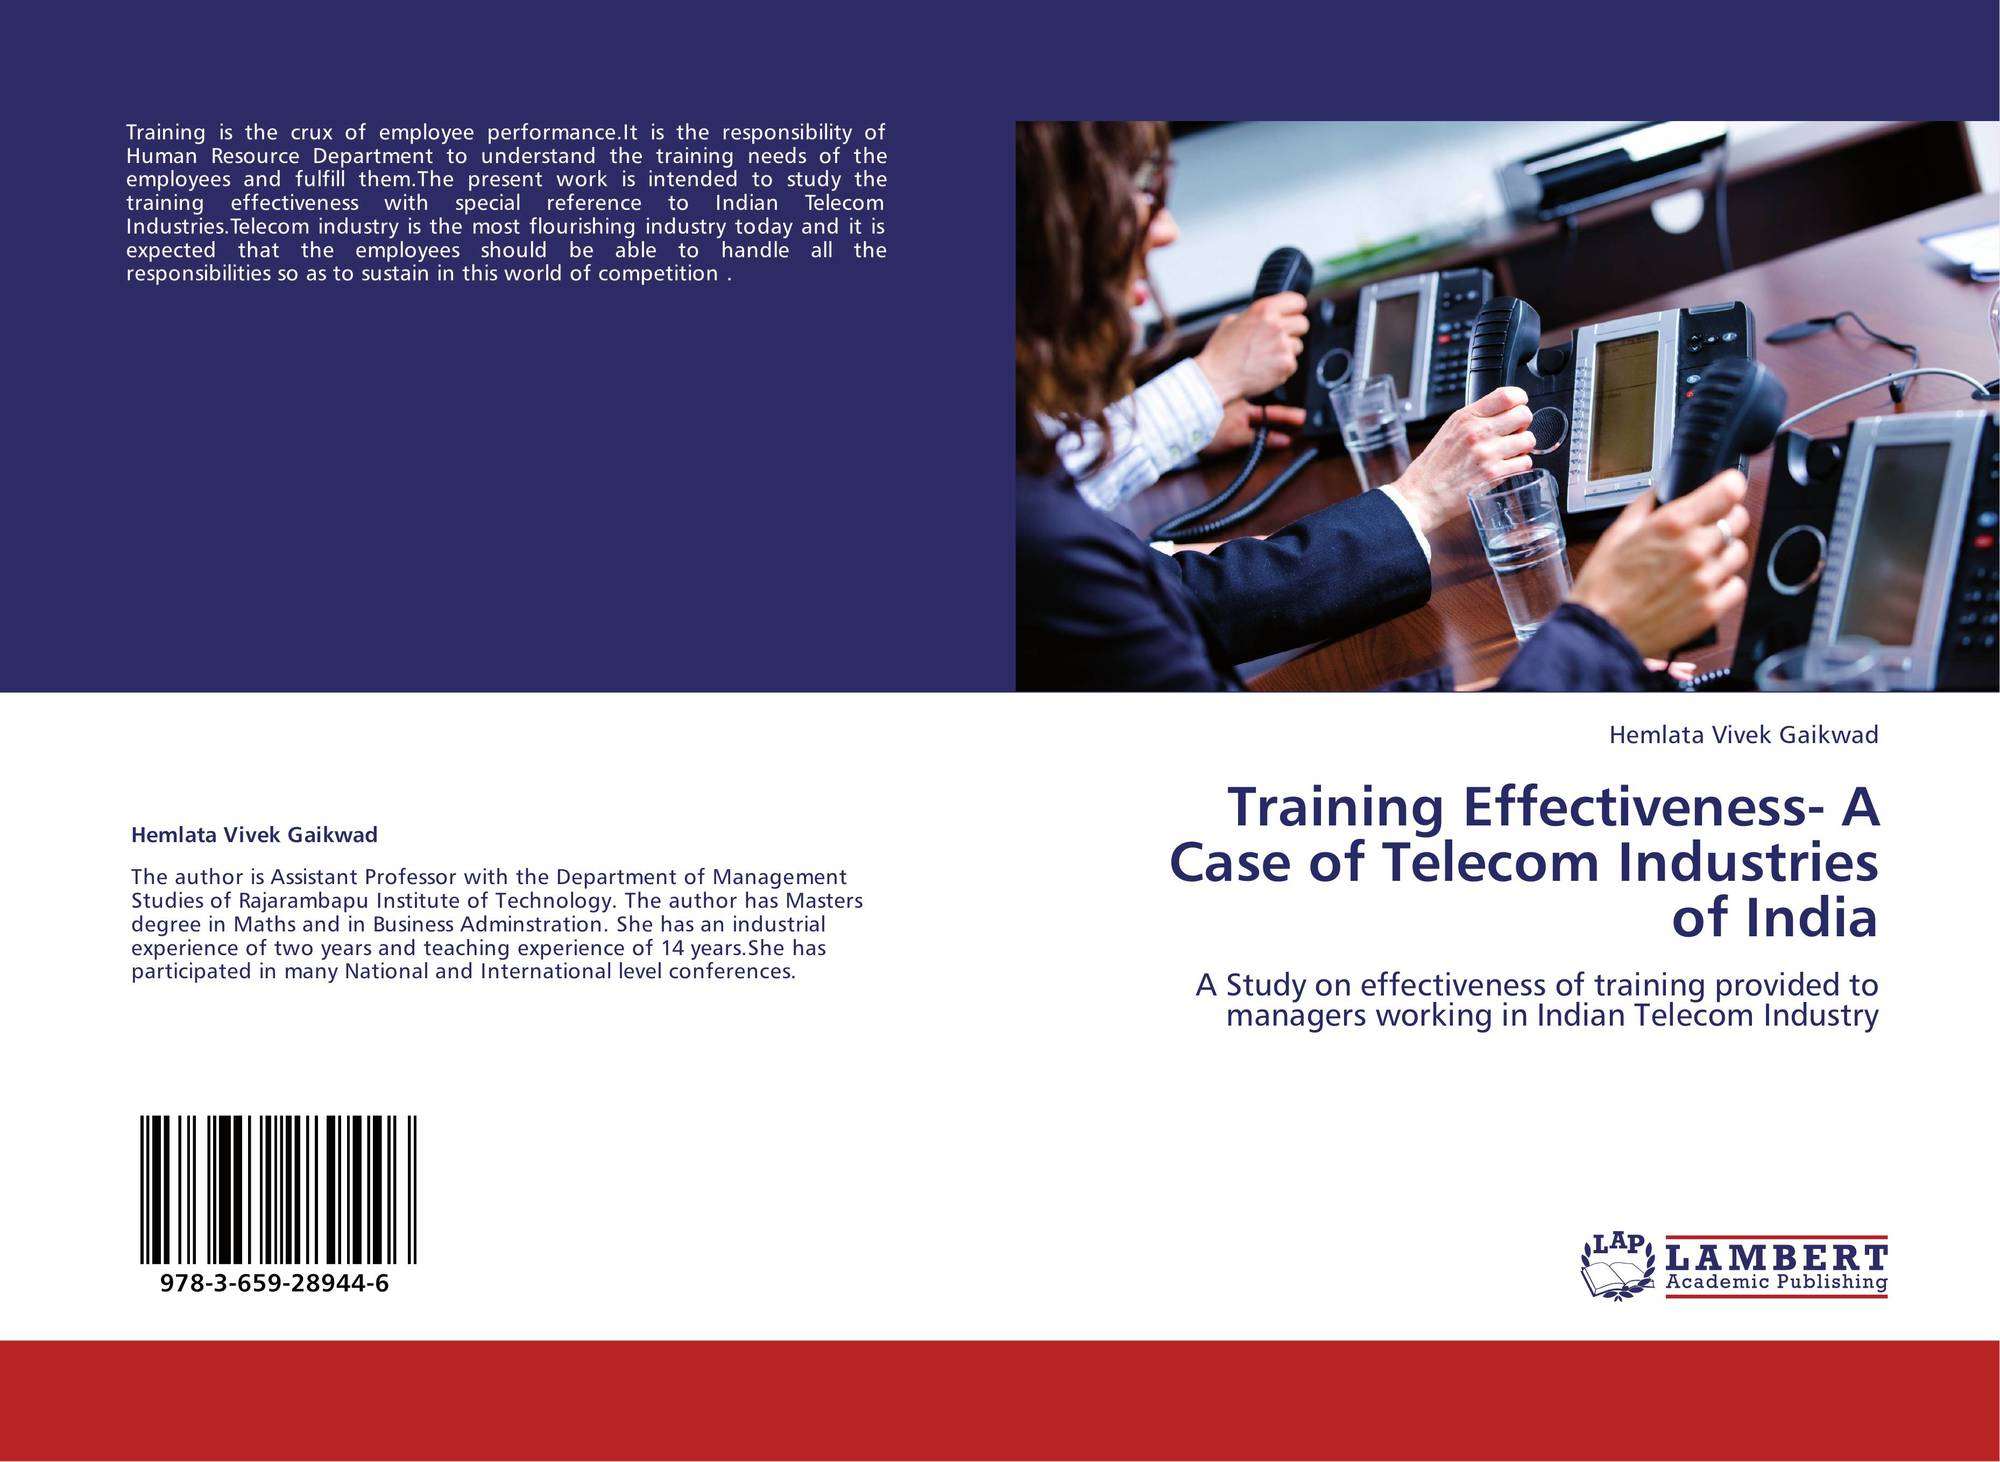 case study on impact of recession on telecom industry in india Economic crisis case studies, ibscdc management, economic crisis case study, mba case studies share corporate hospital's growth strategies in india.